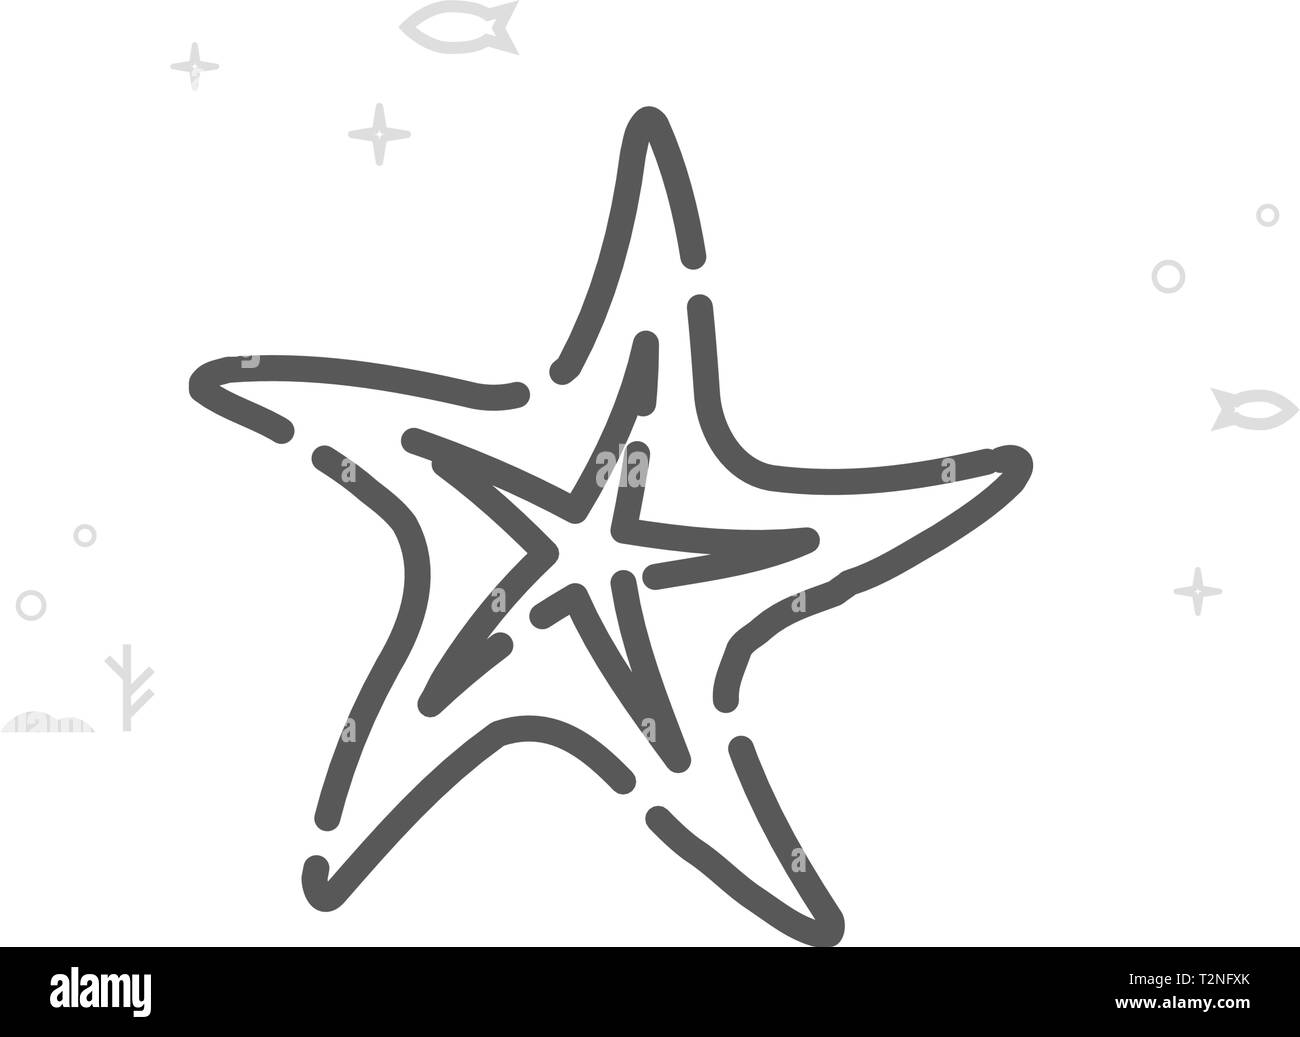 Starfish Vector Line Icon. Marine Life, Sea Creatures Symbol, Pictogram, Sign. Light Abstract Geometric Background. Editable Stroke. - Stock Image